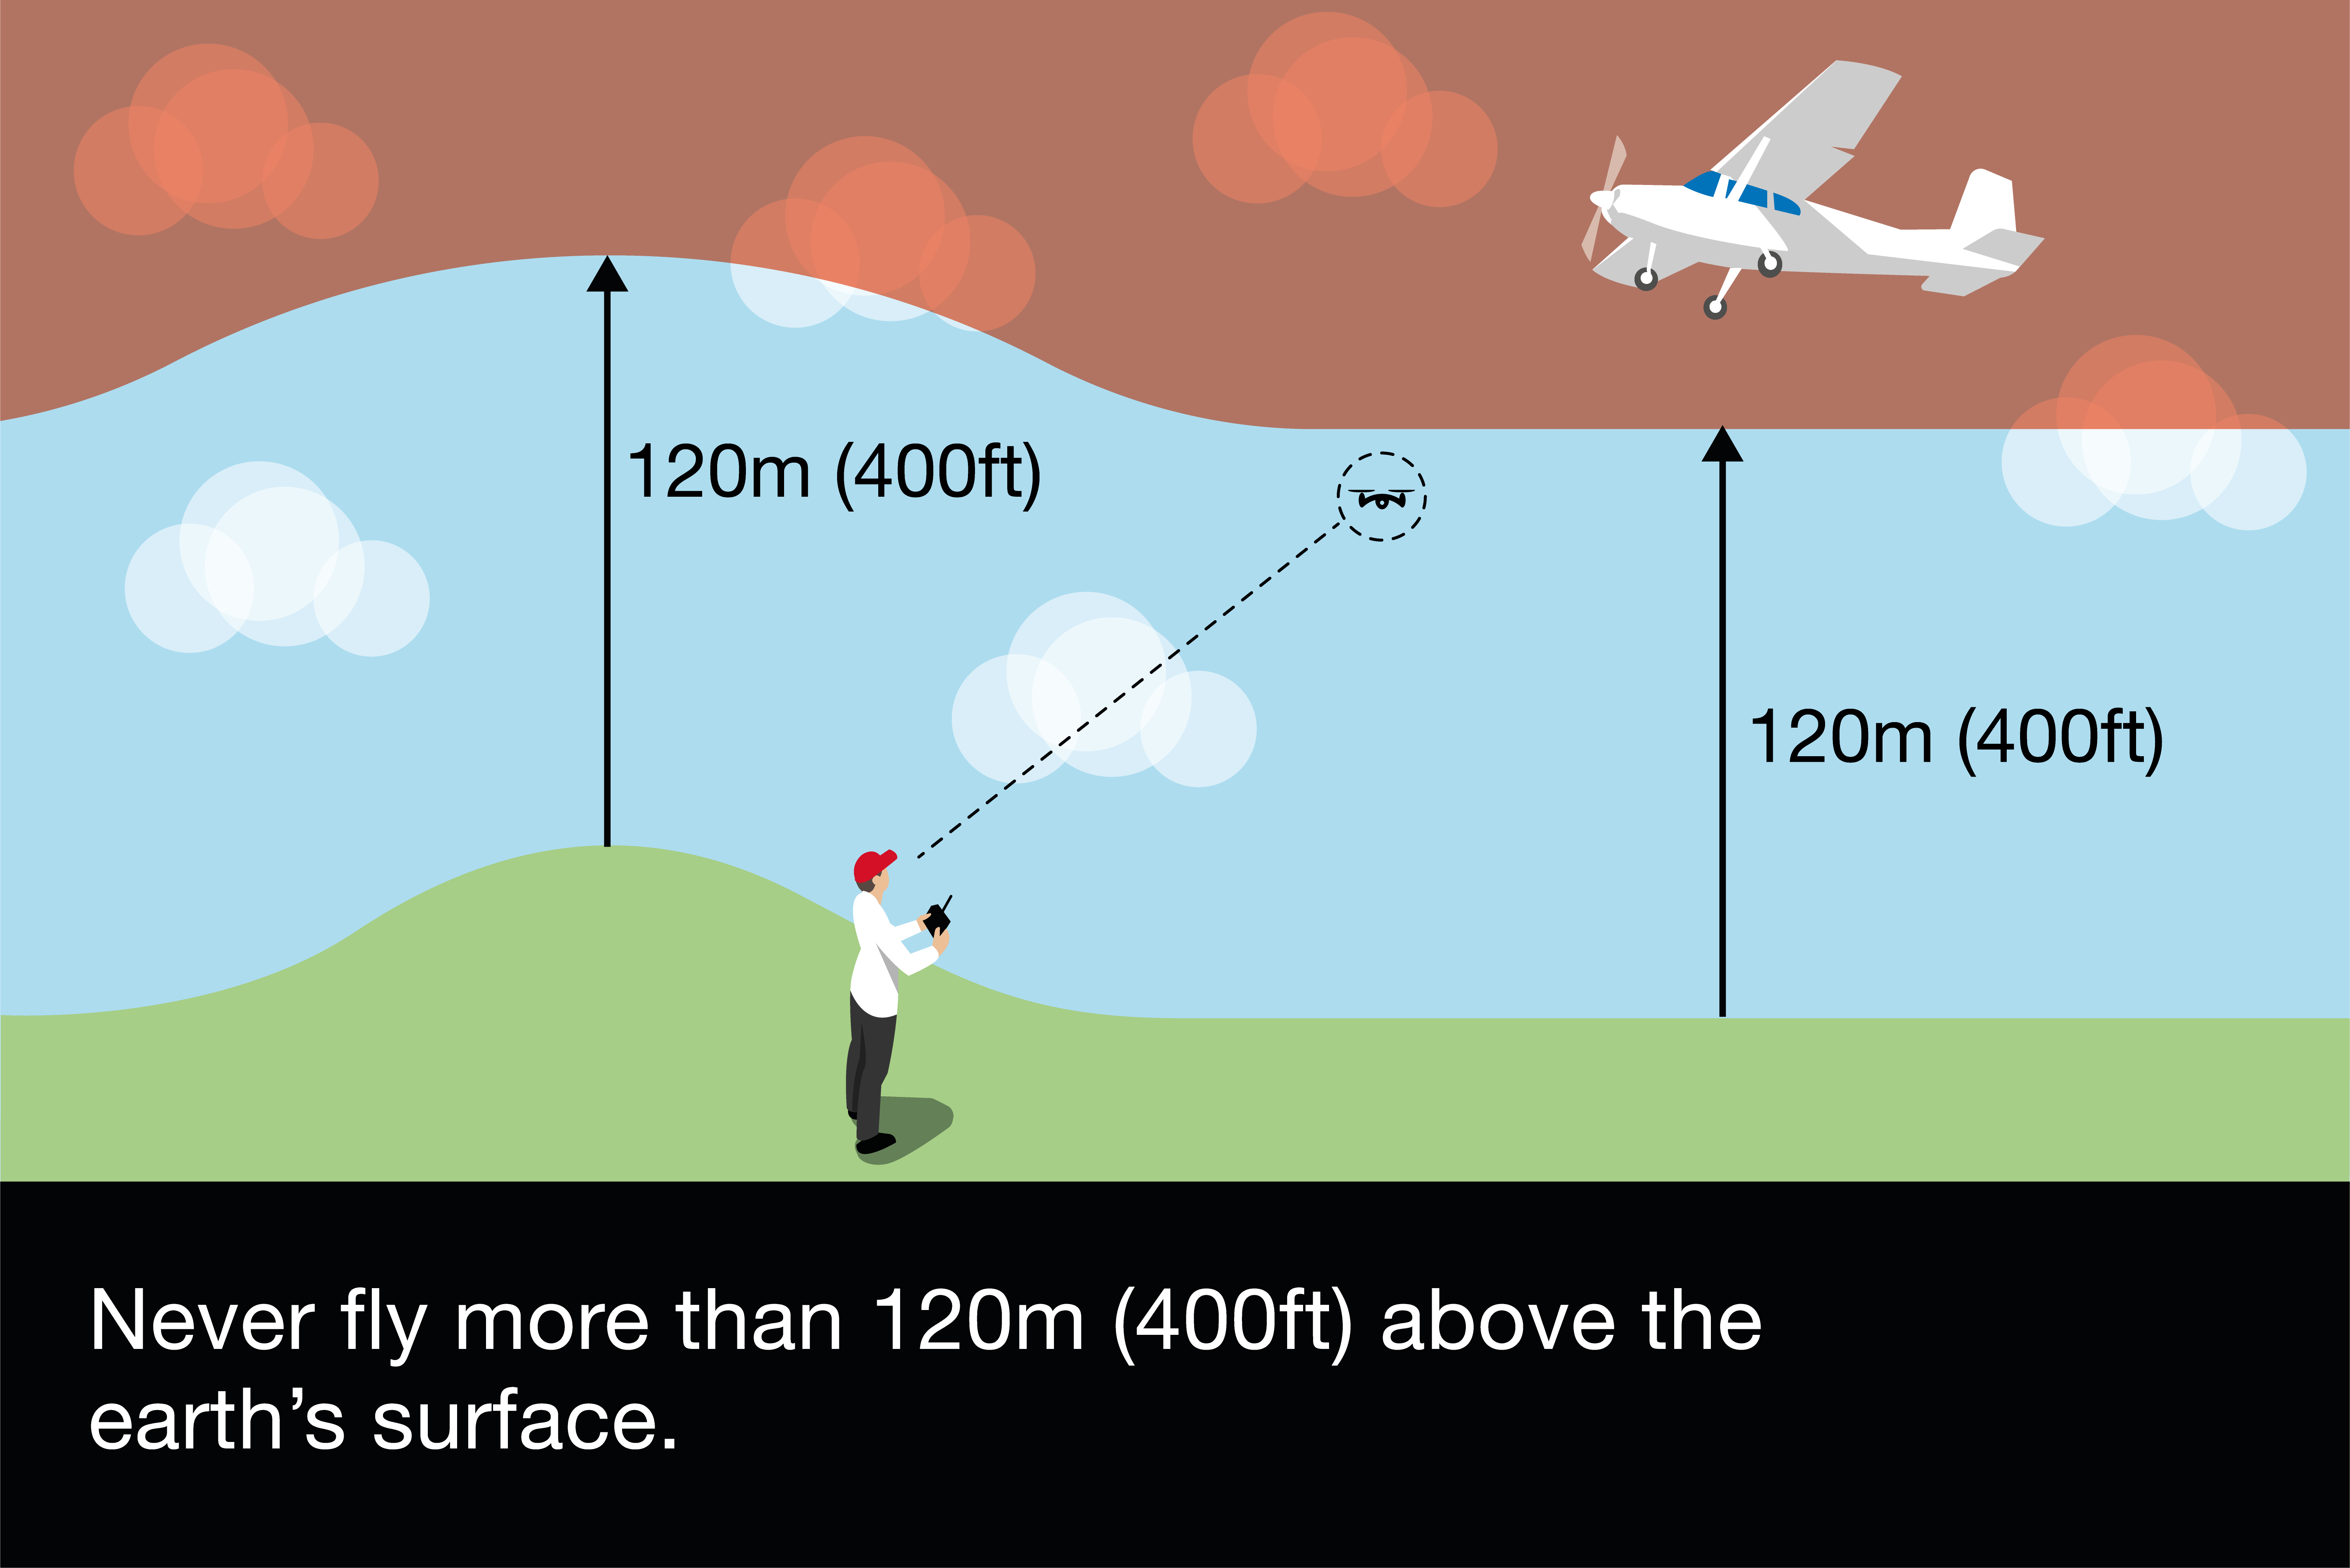 Never fly more than 120 metres above the earth's surface.